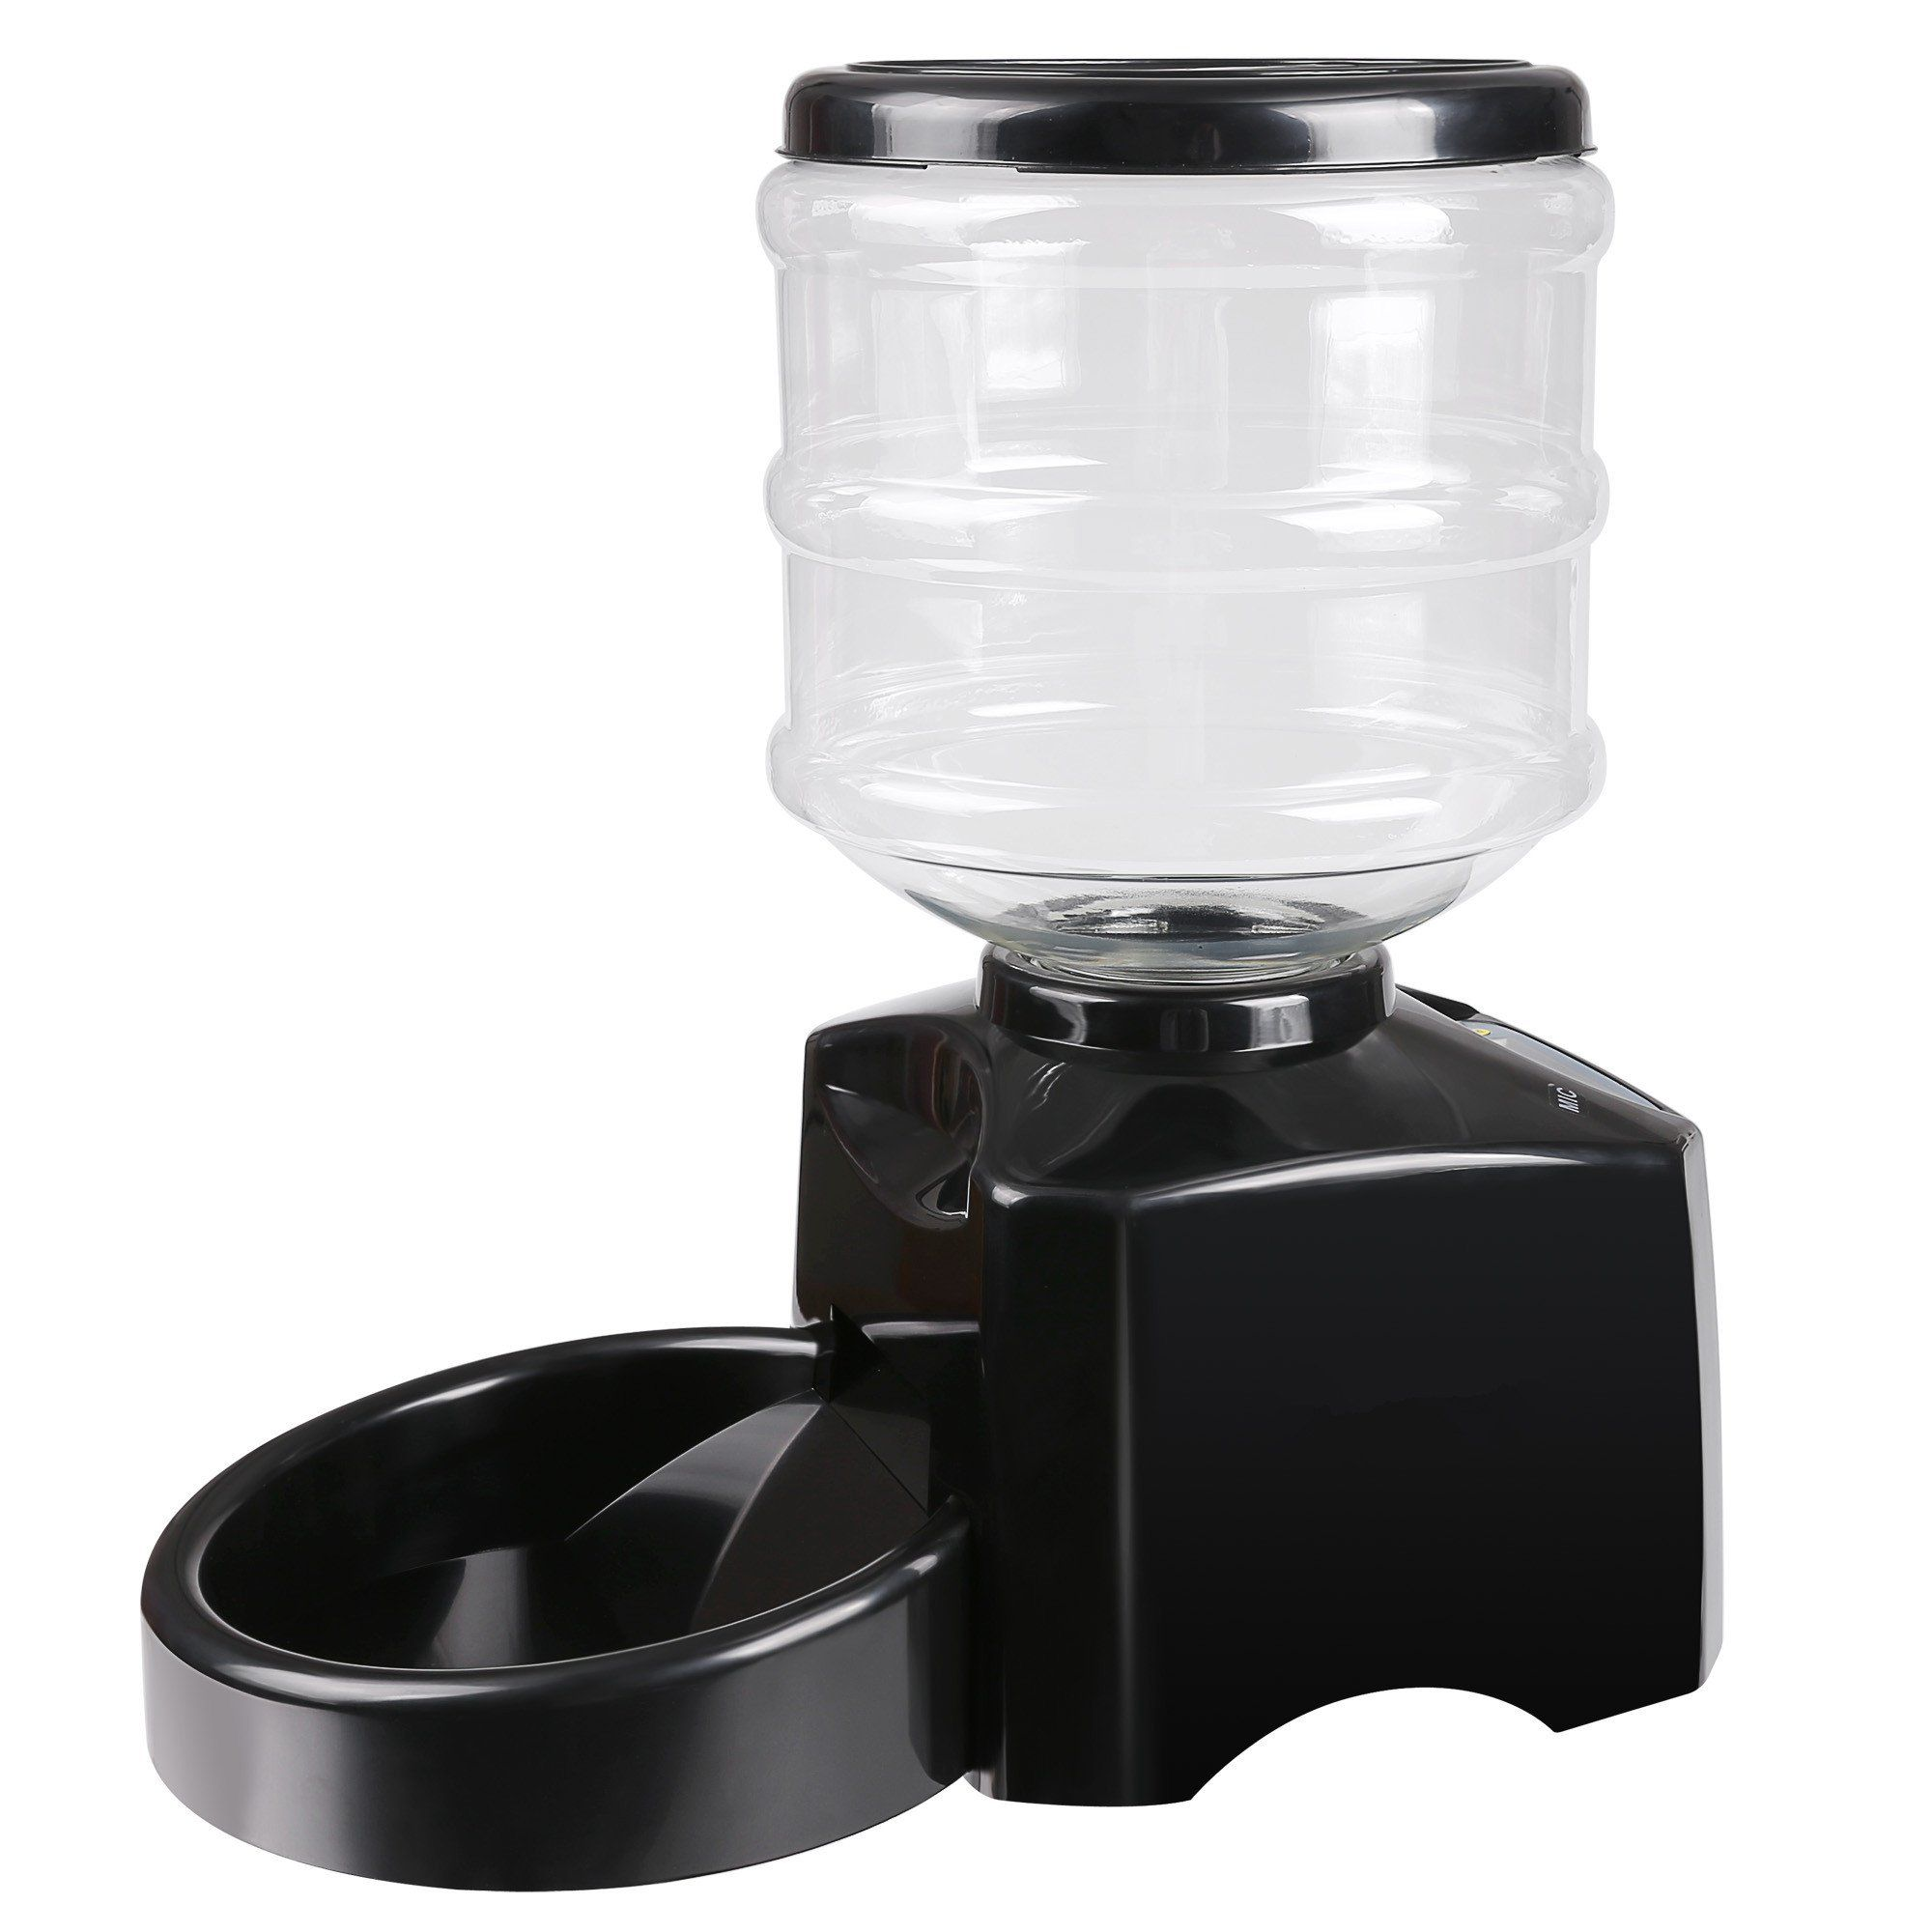 Anfan 55 liter large electric automatic pet feeder dog